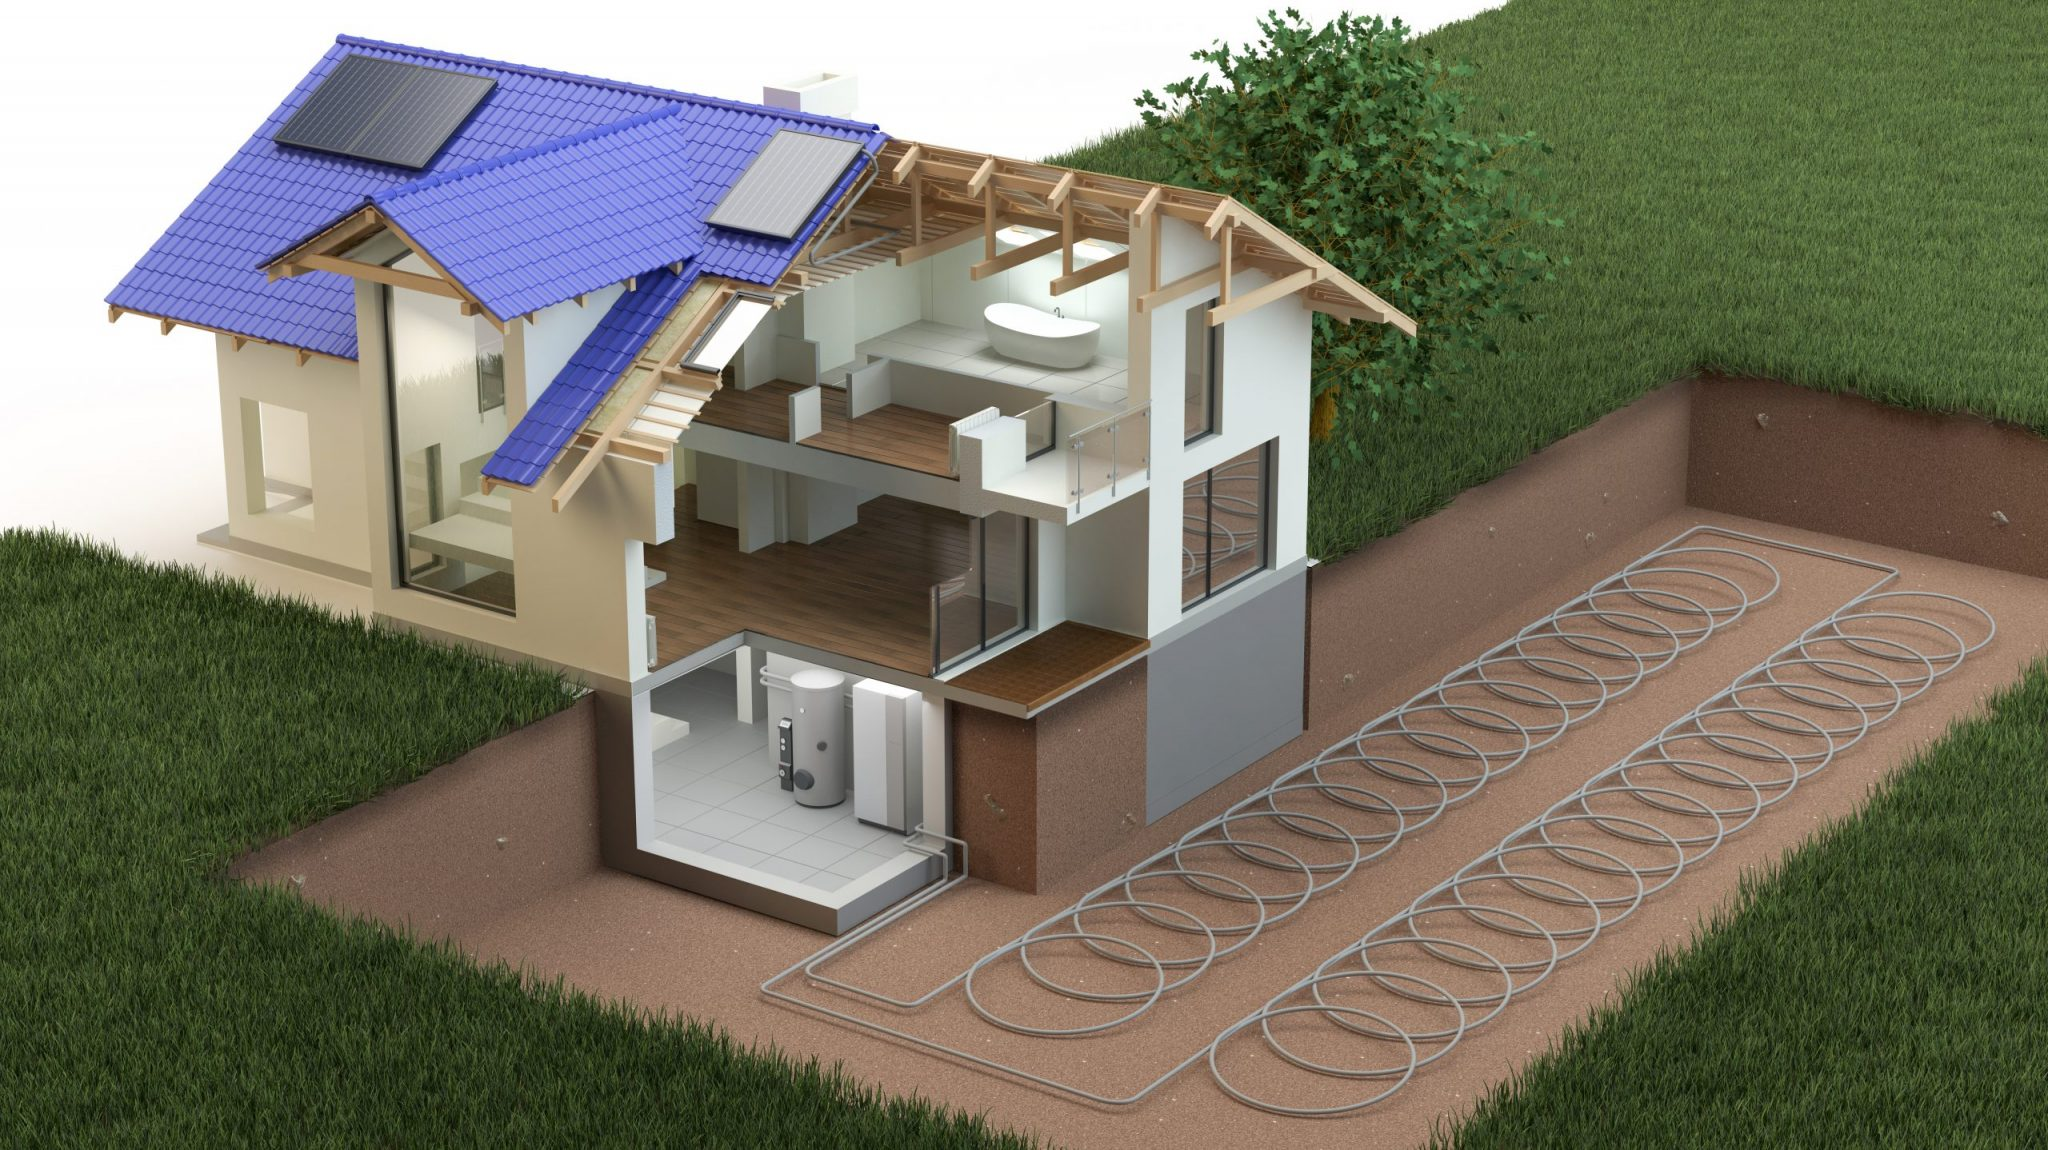 A graphic of a tan home with a blue roof in a yard with a tree and dark green grass, with a section of the yard showing the coiled pipes below that connect to a pump in the basement of the house.